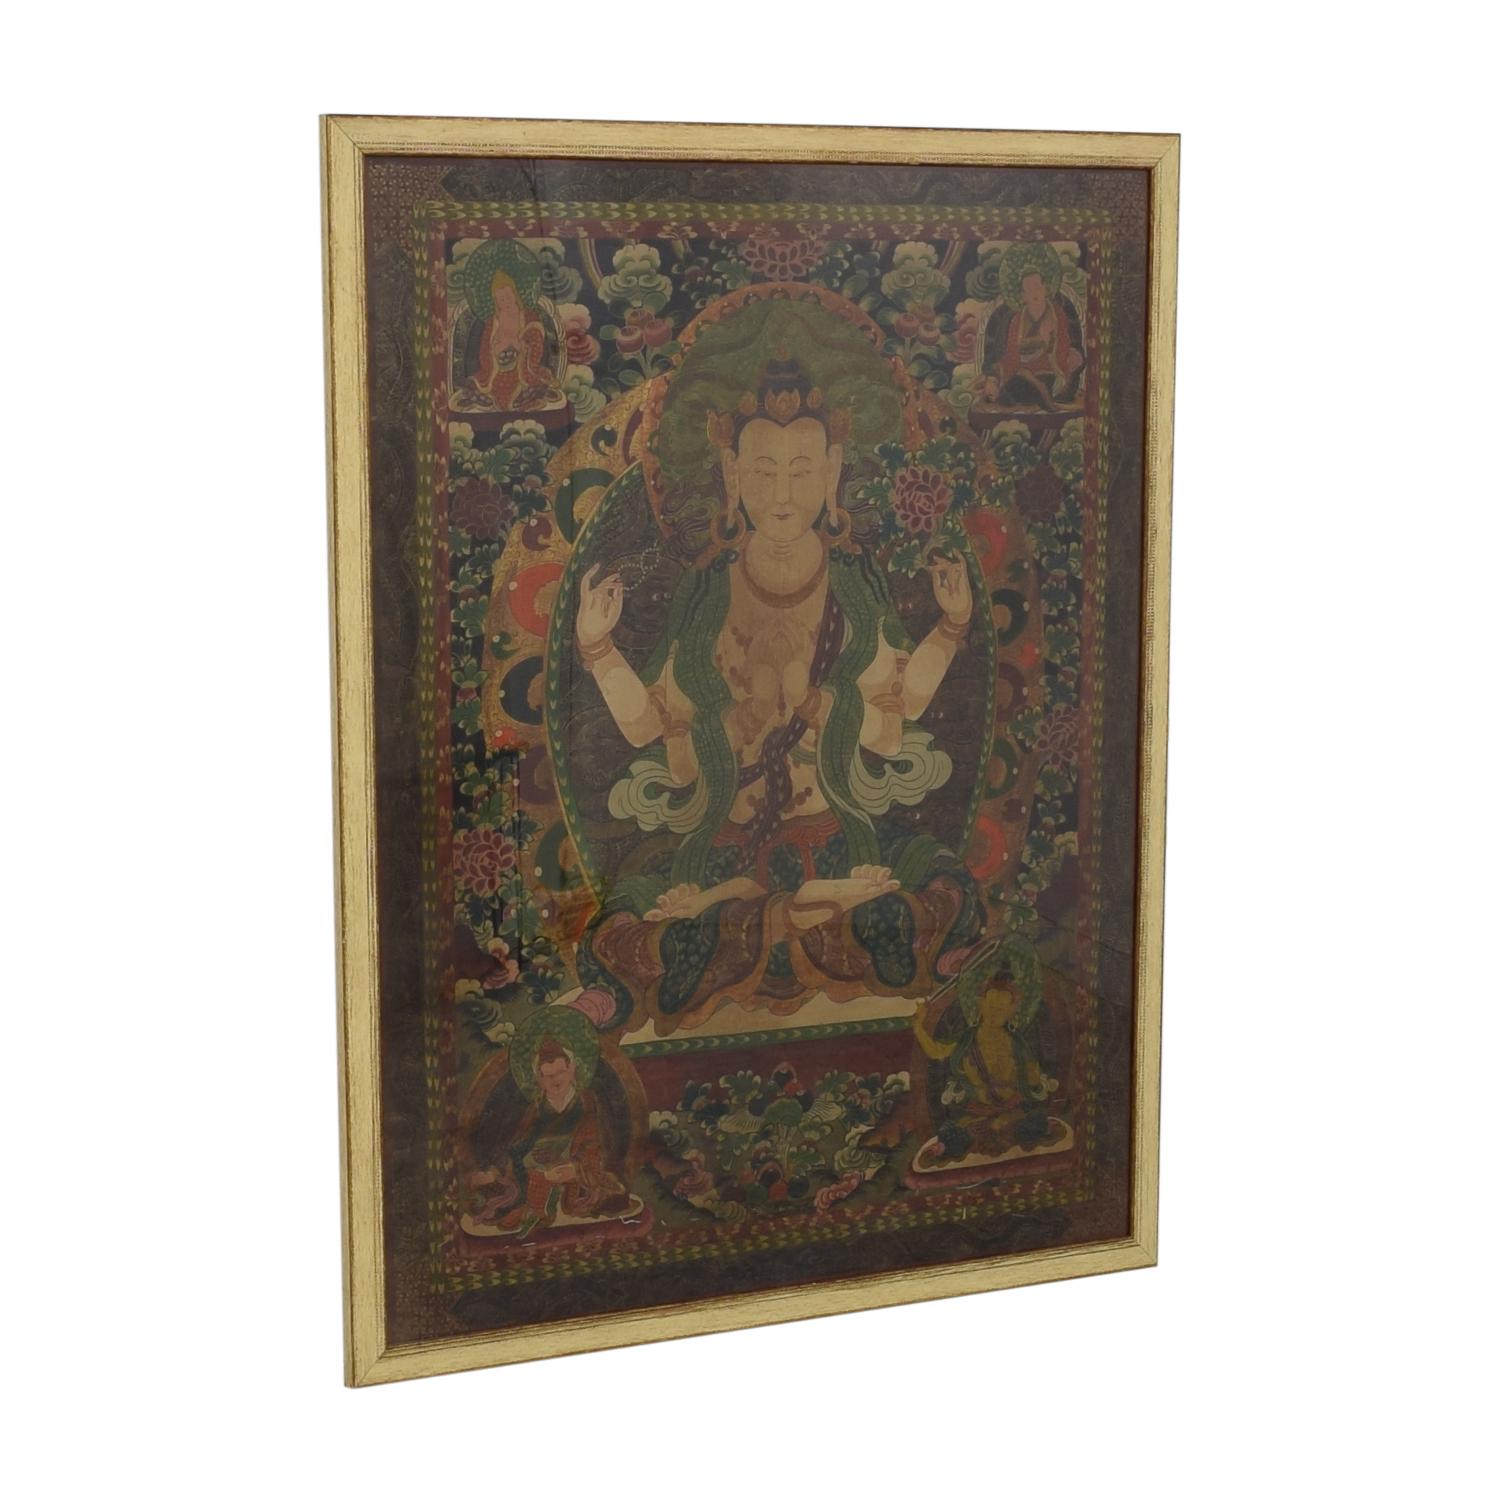 Framed Thangka Wall Art for sale